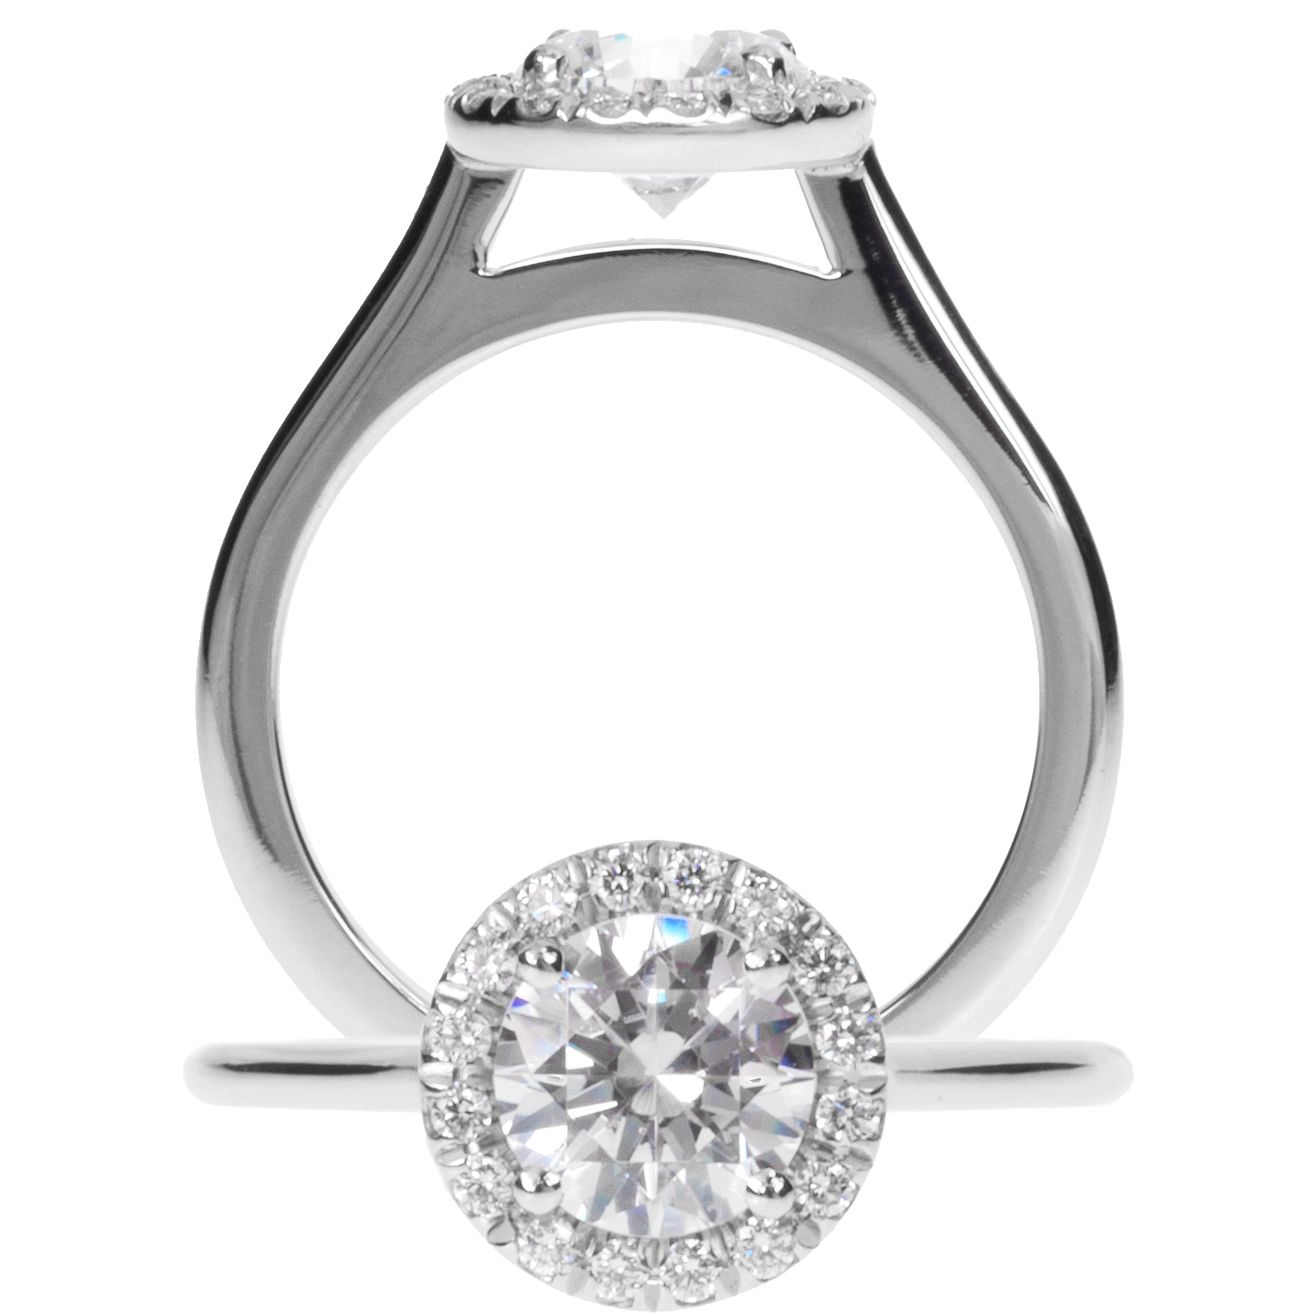 engagement st collection details louis mark rings view patterson jewelry